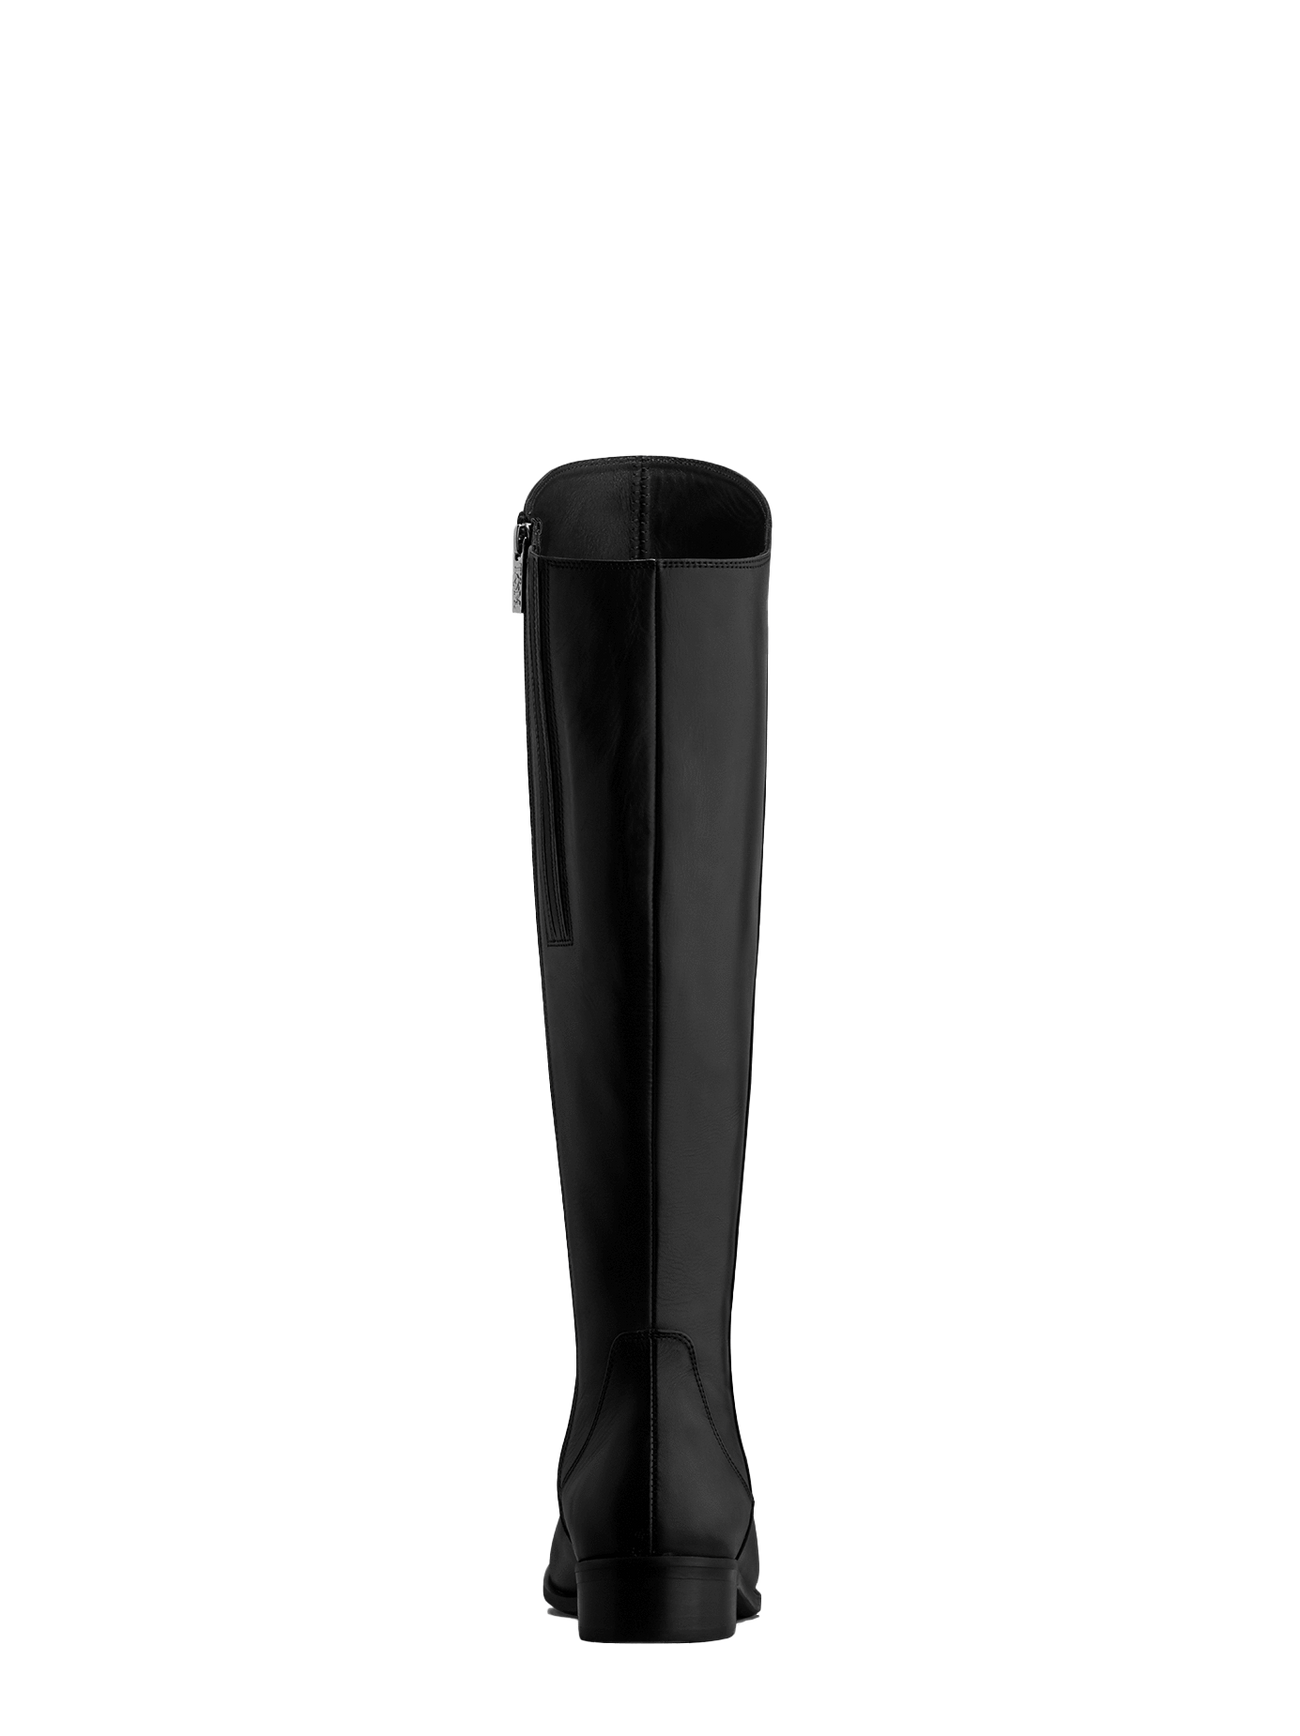 The black Huntsman has a lower asymmetric cut at the back of the boot.